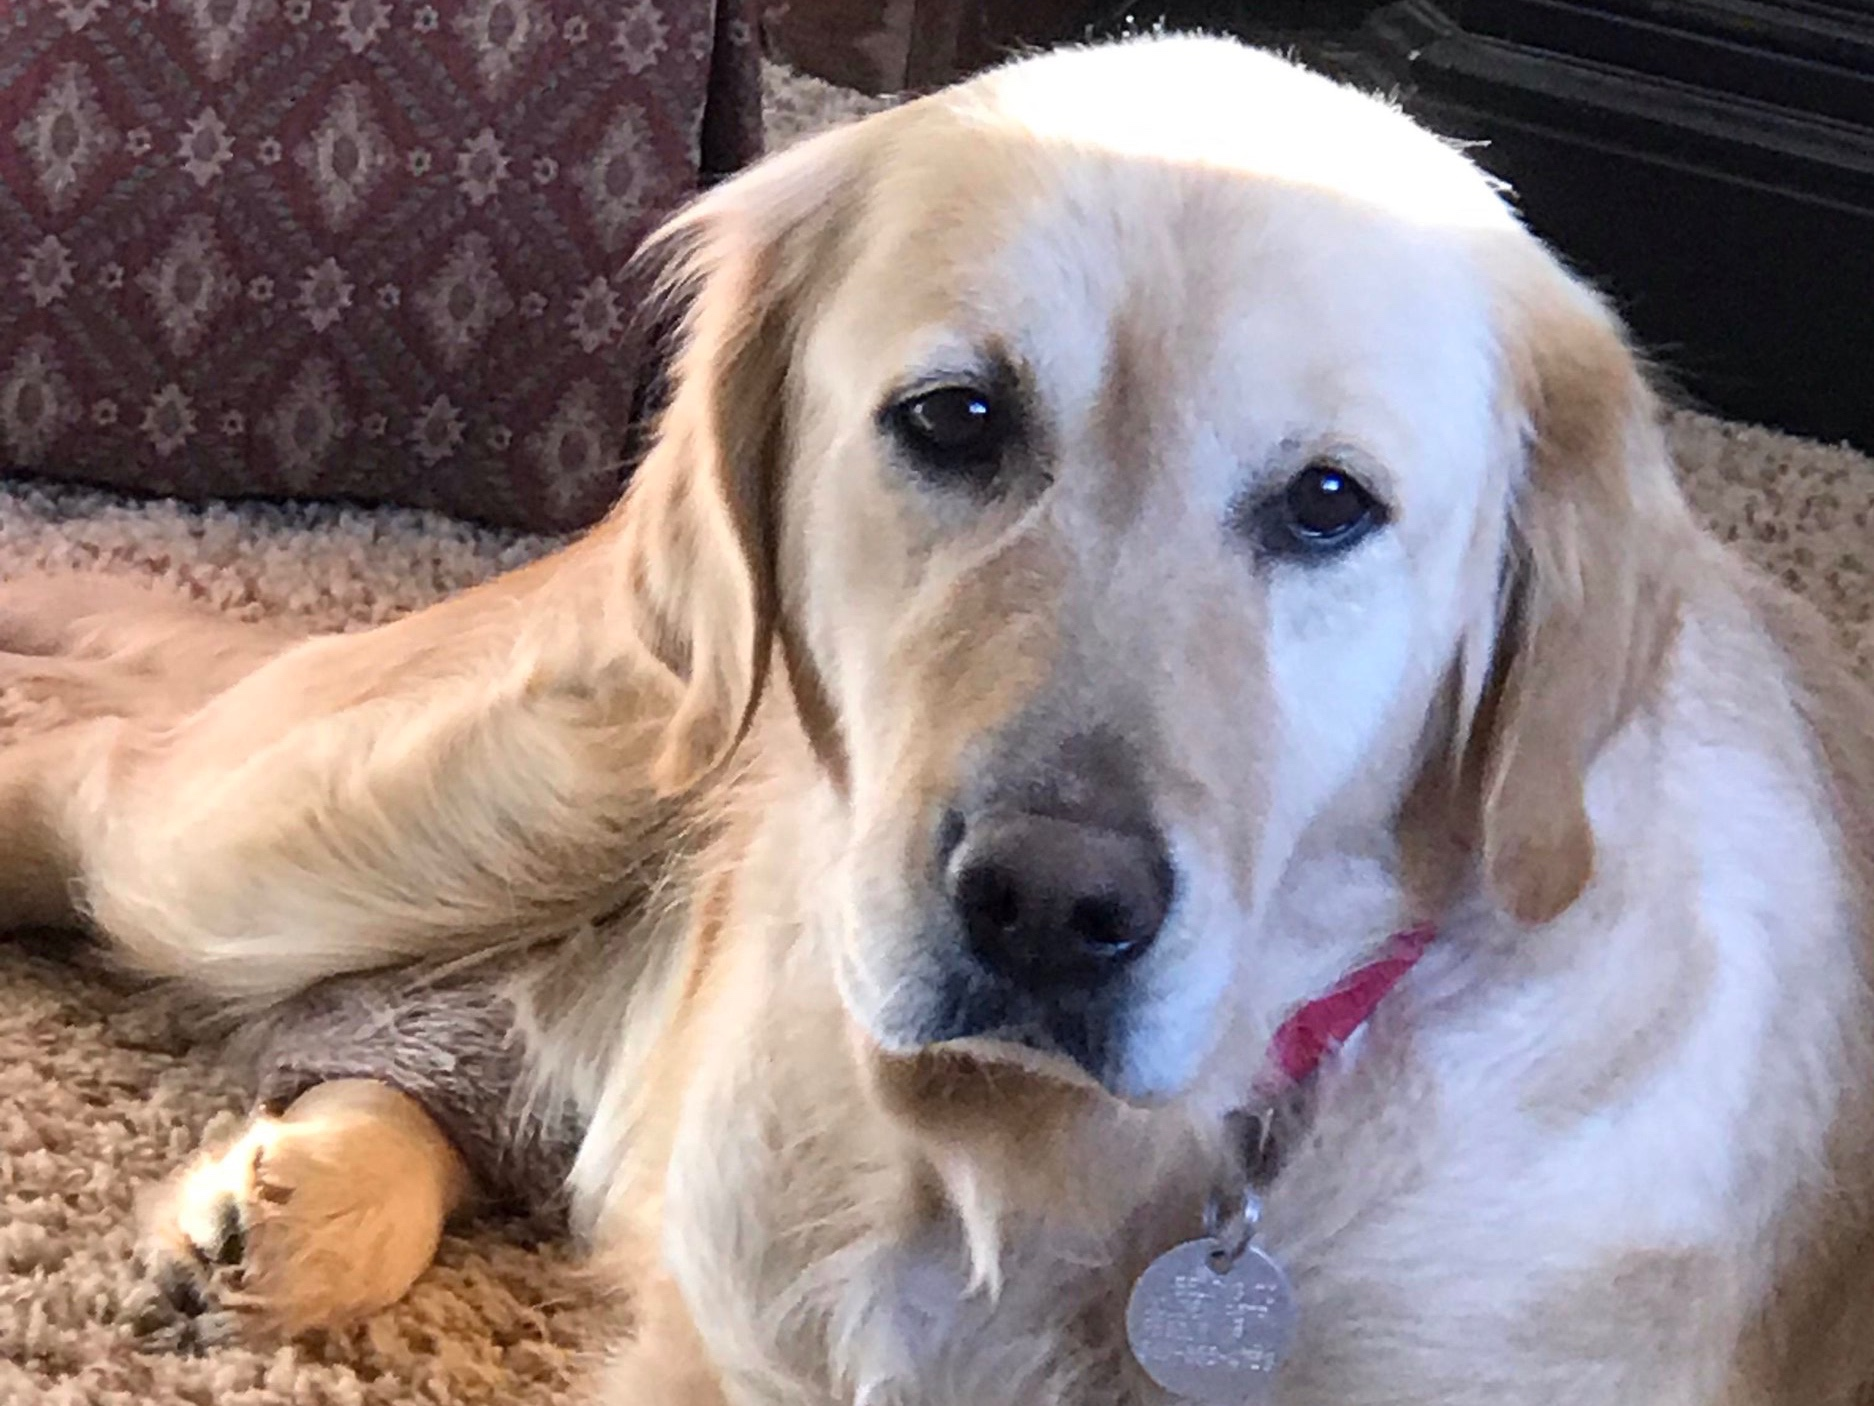 """This was written by Hannah's adoptive home.    We are so proud of Hannah. She doesn't seem to be stressed at all. When we first got home she laid down in the hallway, but after the dogs, my husband and I settled in the main room and started to read, she came in, went to the toy box and got a tennis ball, then plopped herself down. Every now and then she has been going to my husband and sits next to his chair, wanting him to pet her. When he does, you can hear her tail go thump, thump, thump. My husband is so happy. Right now, as I write this, she is laying next to me where I am on the couch, and wants to be petted! If I'm petting her, and then stop to lie down, she sits up and looks at me as if to say, """" Hey... Why'd you stop petting me"""". Then there's the tail wagging again. She's got some happy tail wagging going on! I love to see that.  Our dog Olive follows her around. I've never seen Olive this relaxed and laid back. I'm truly stunned. It's like she's bringing Hannah out of her shell. It's almost like Olive knows when to comfort her and when to let her be.  Yep! Hannah is going to fit in this little zoo of ours just fine!"""